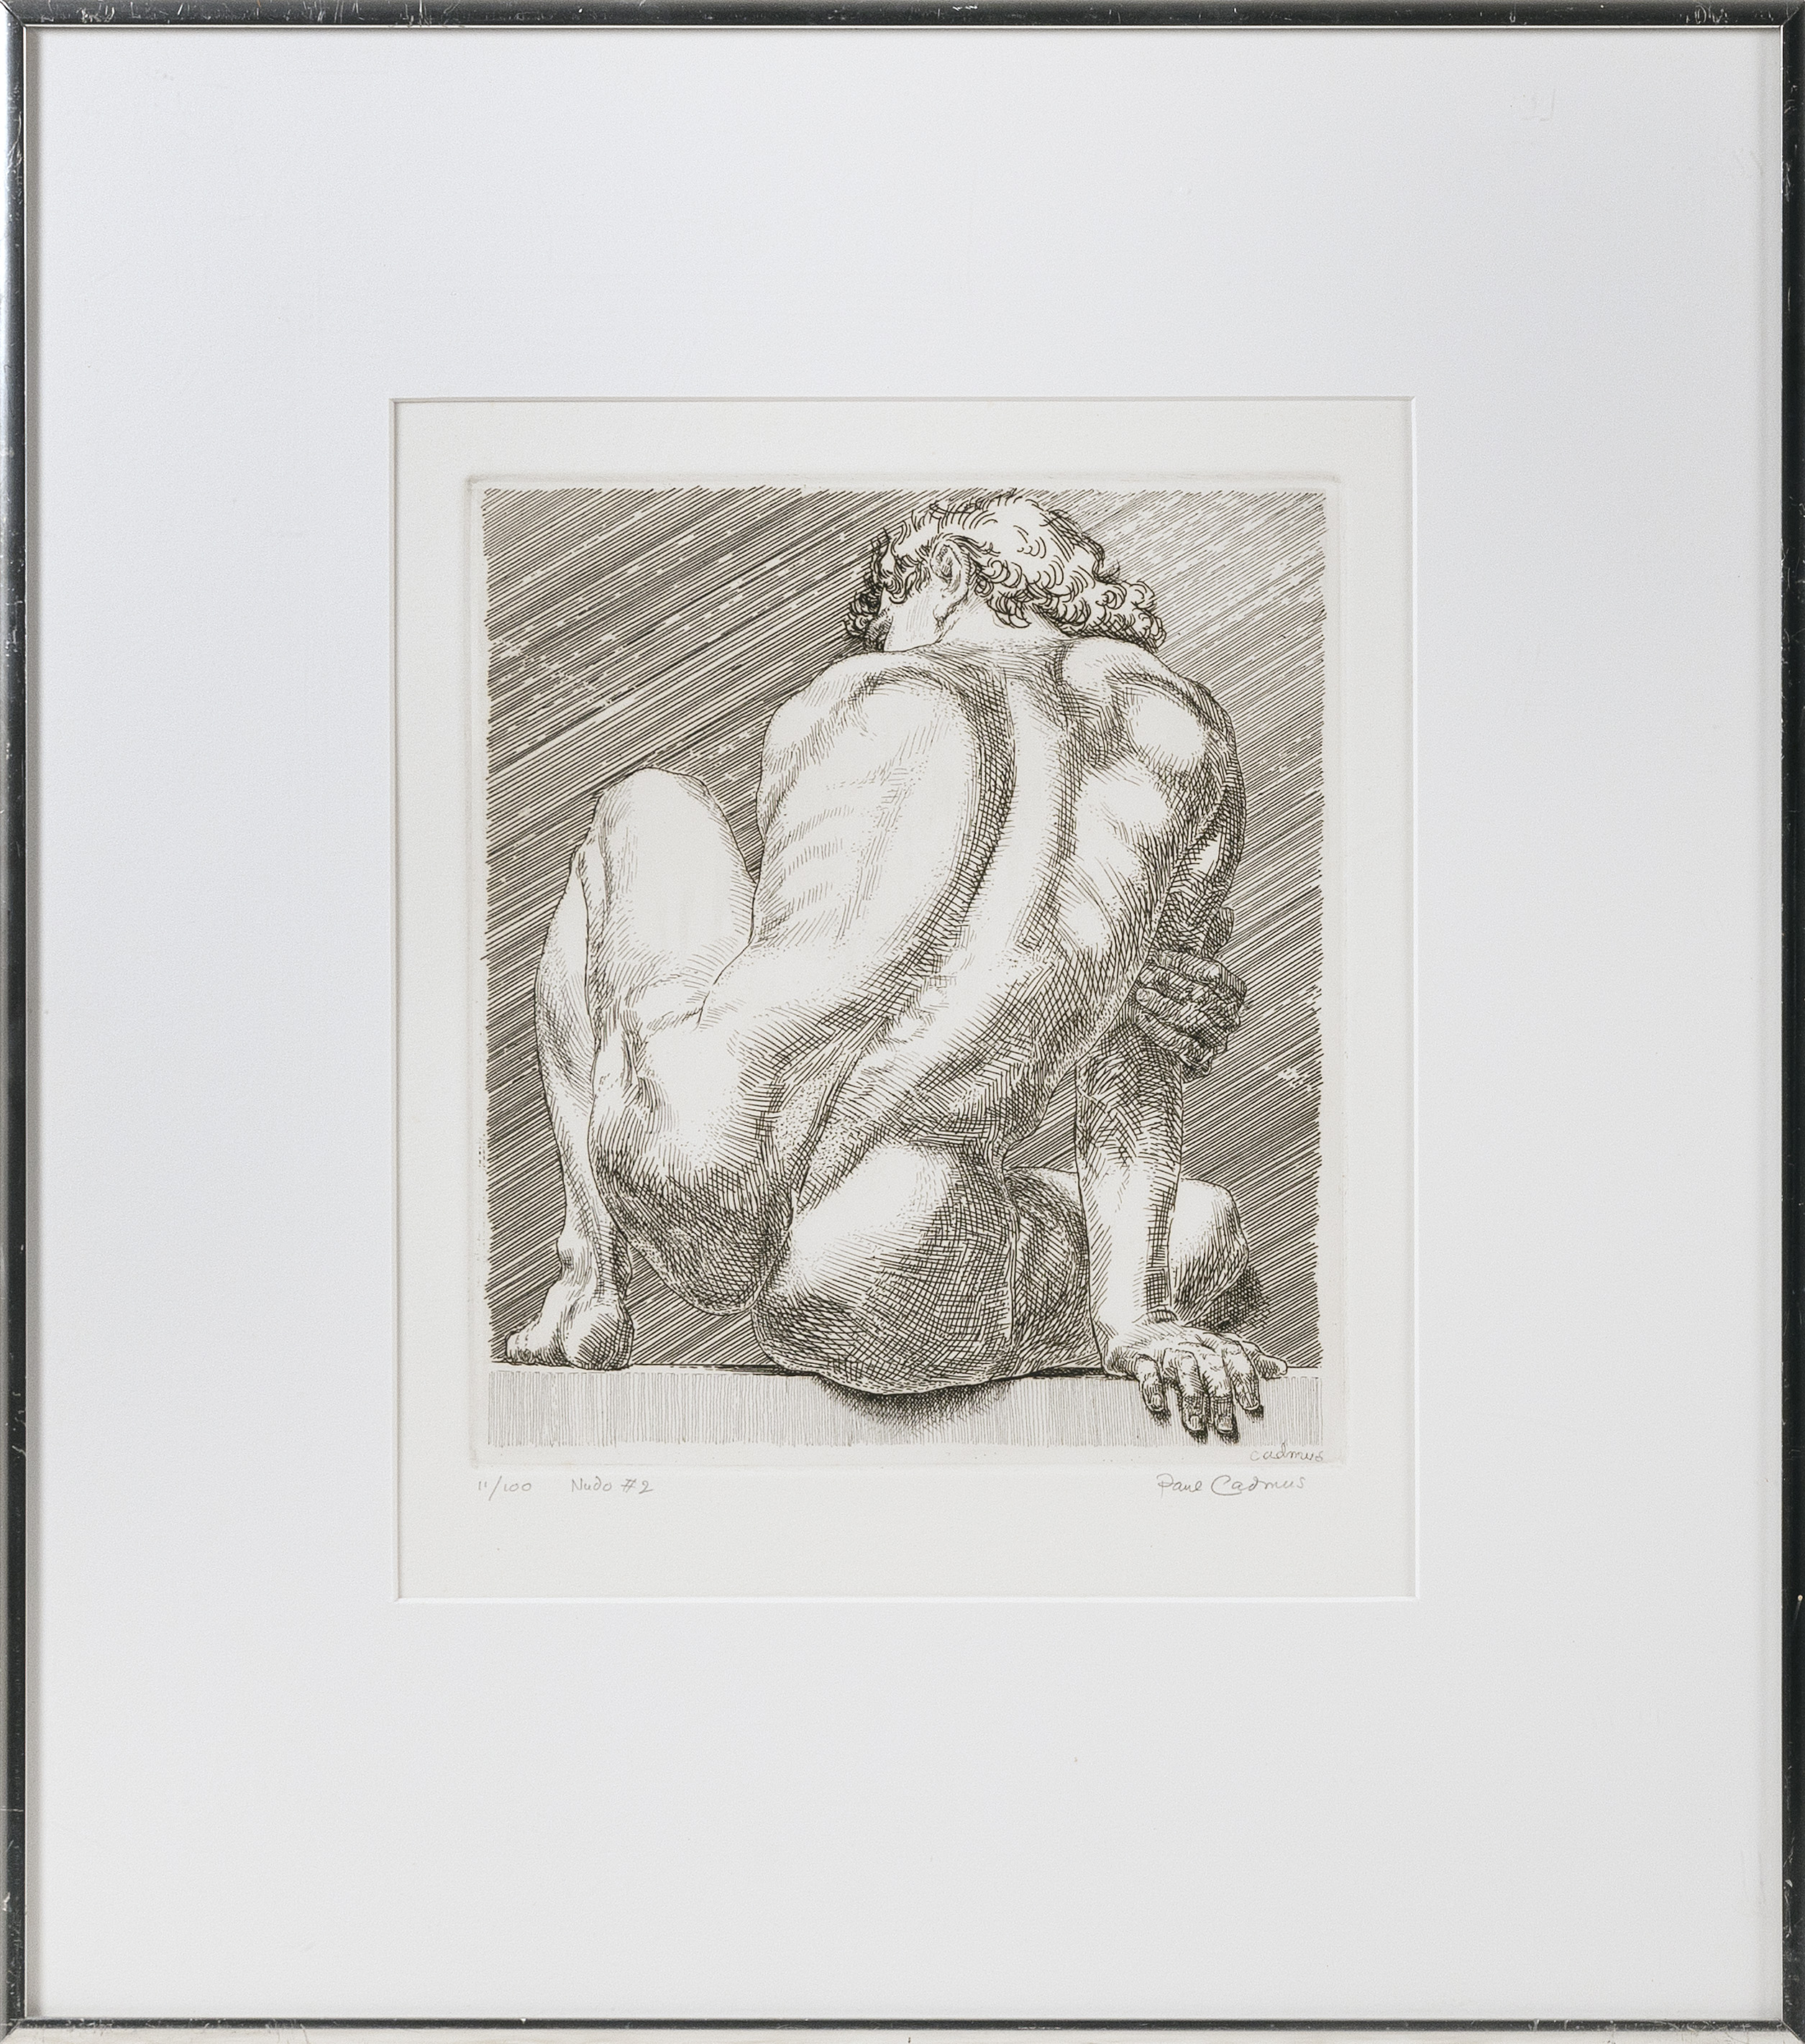 """PAUL CADMUS (Connecticut, 1904-1999), """"Nudo #2""""., Etching on paper, 9"""" x 8"""" sight. Framed 18.75"""" x 16.75""""."""